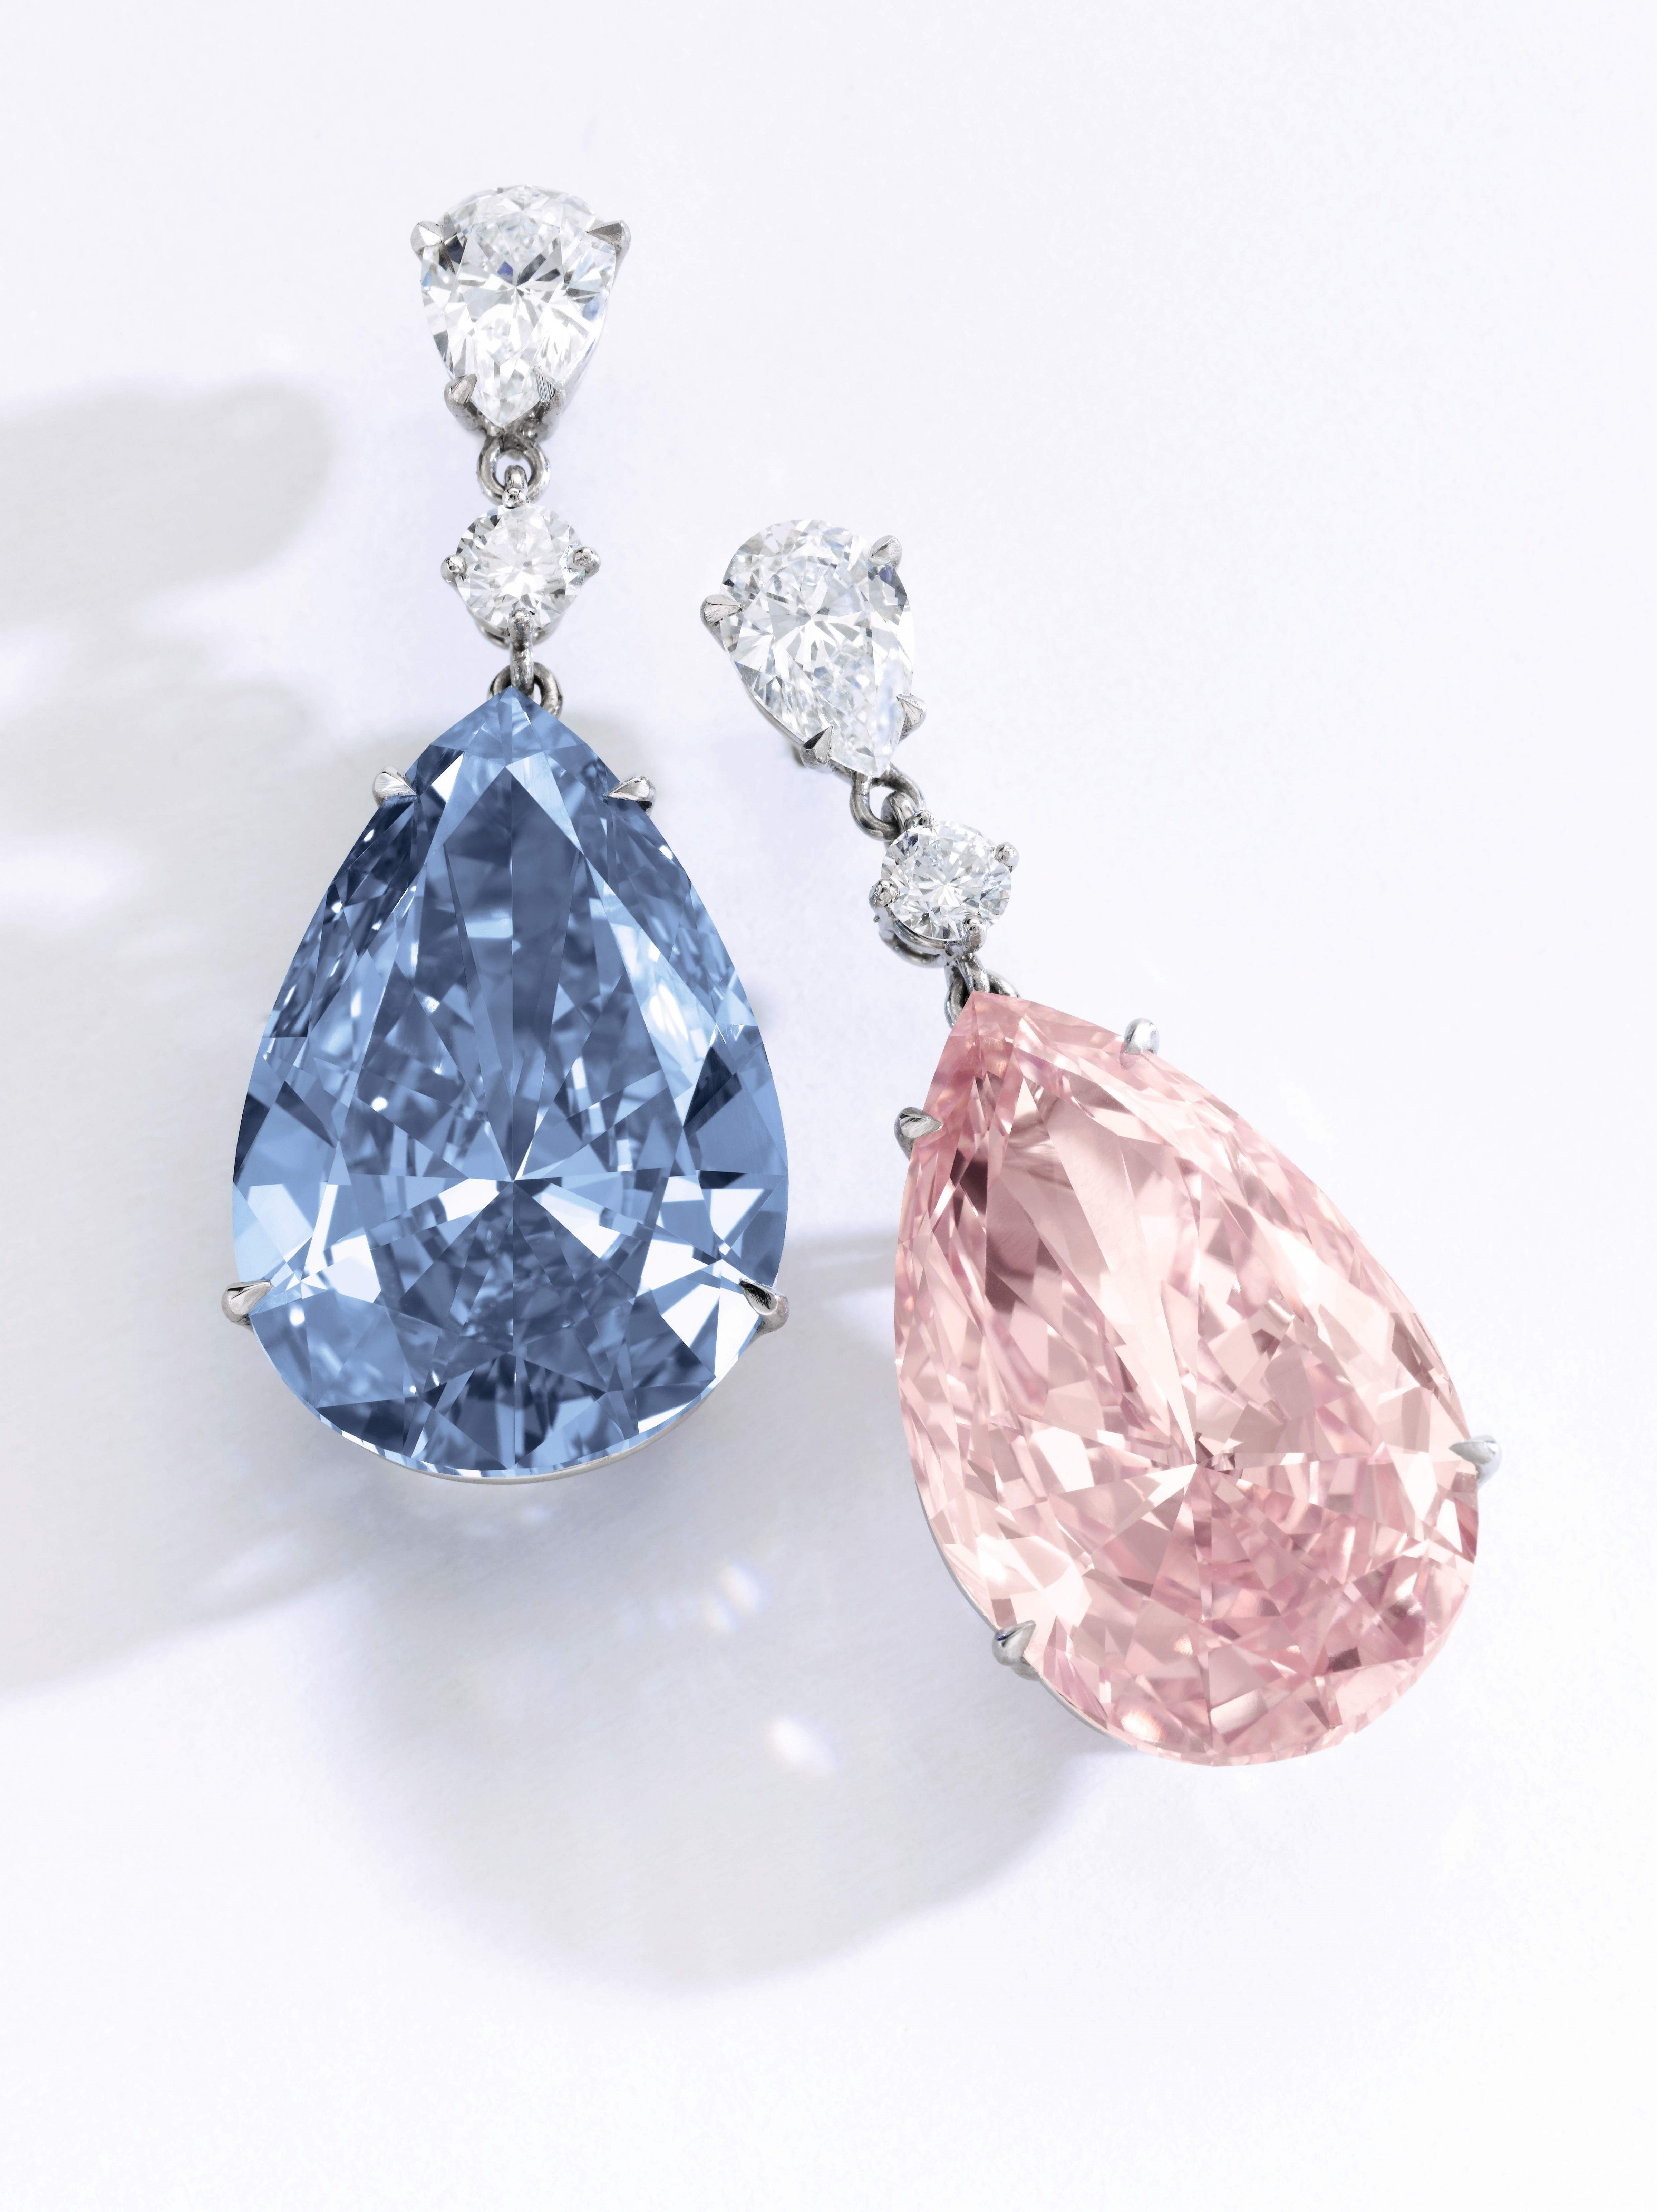 674014f1b Sothebys is auctioning off diamond earrings valued at over $50 million—see  them here.